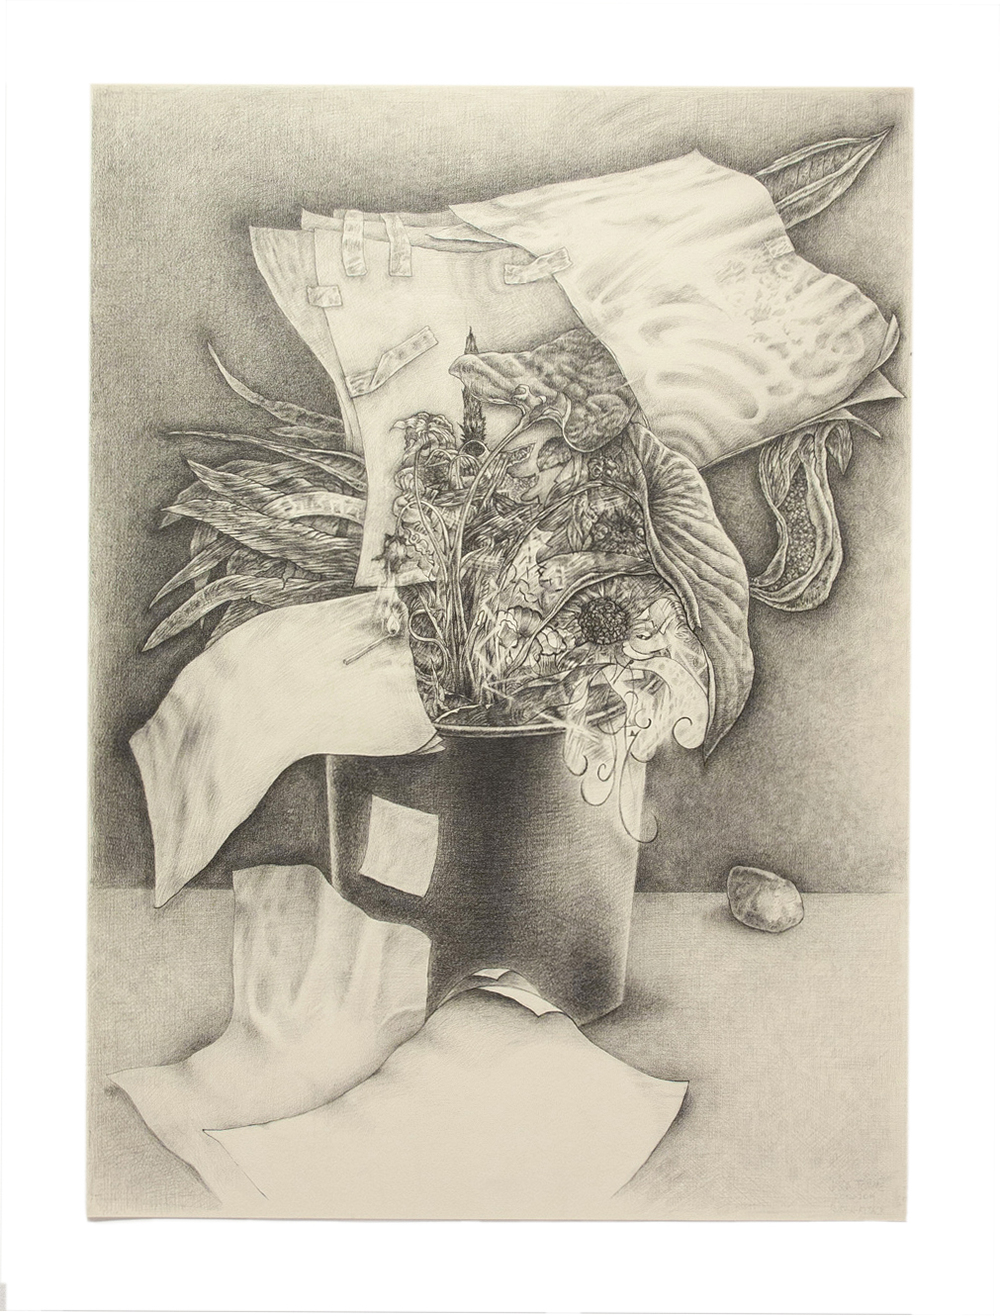 "Jason Tomme, Potted Plants: Rush N Attack, graphite on paper, 22 x 30"", 2014"